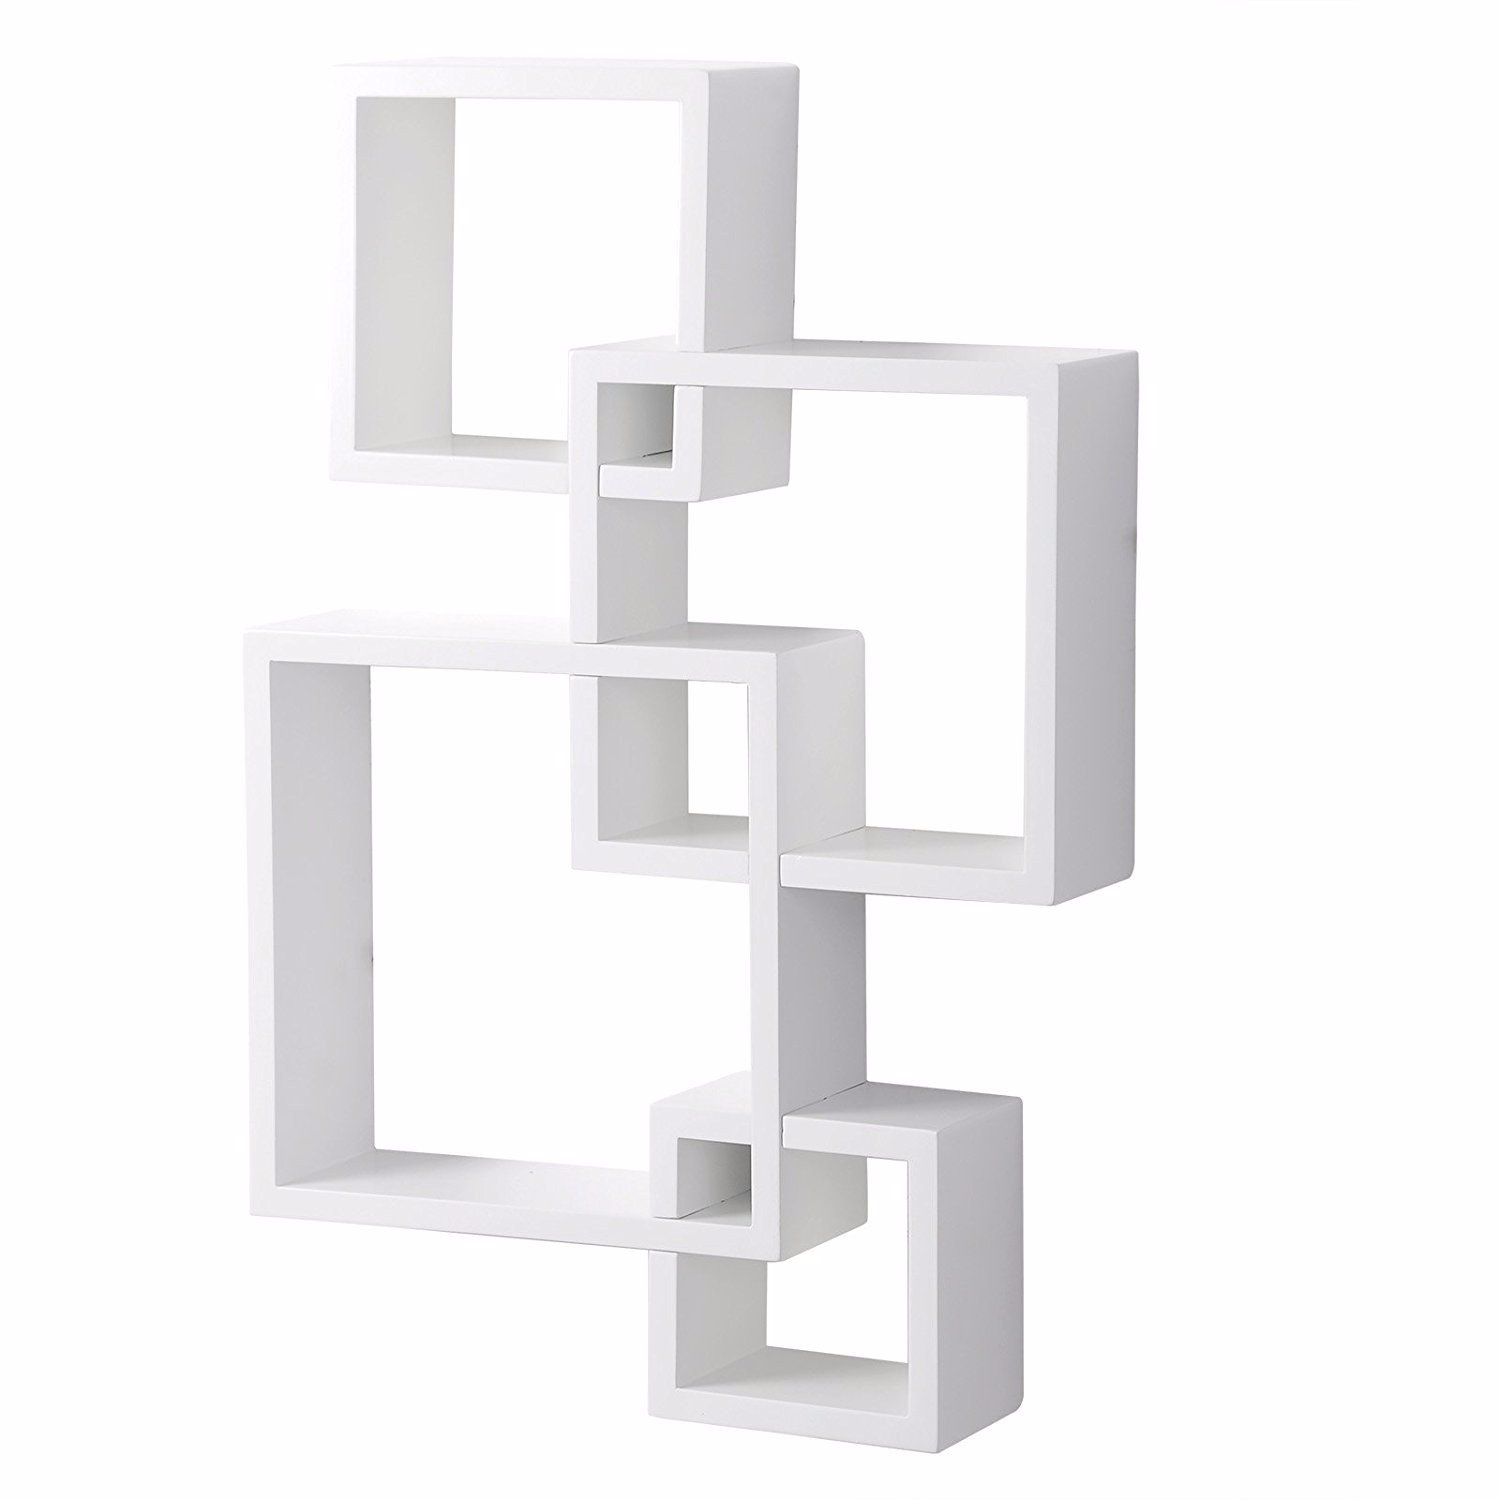 Set of 4 Intersecting Decorative Color Wall Shelf White